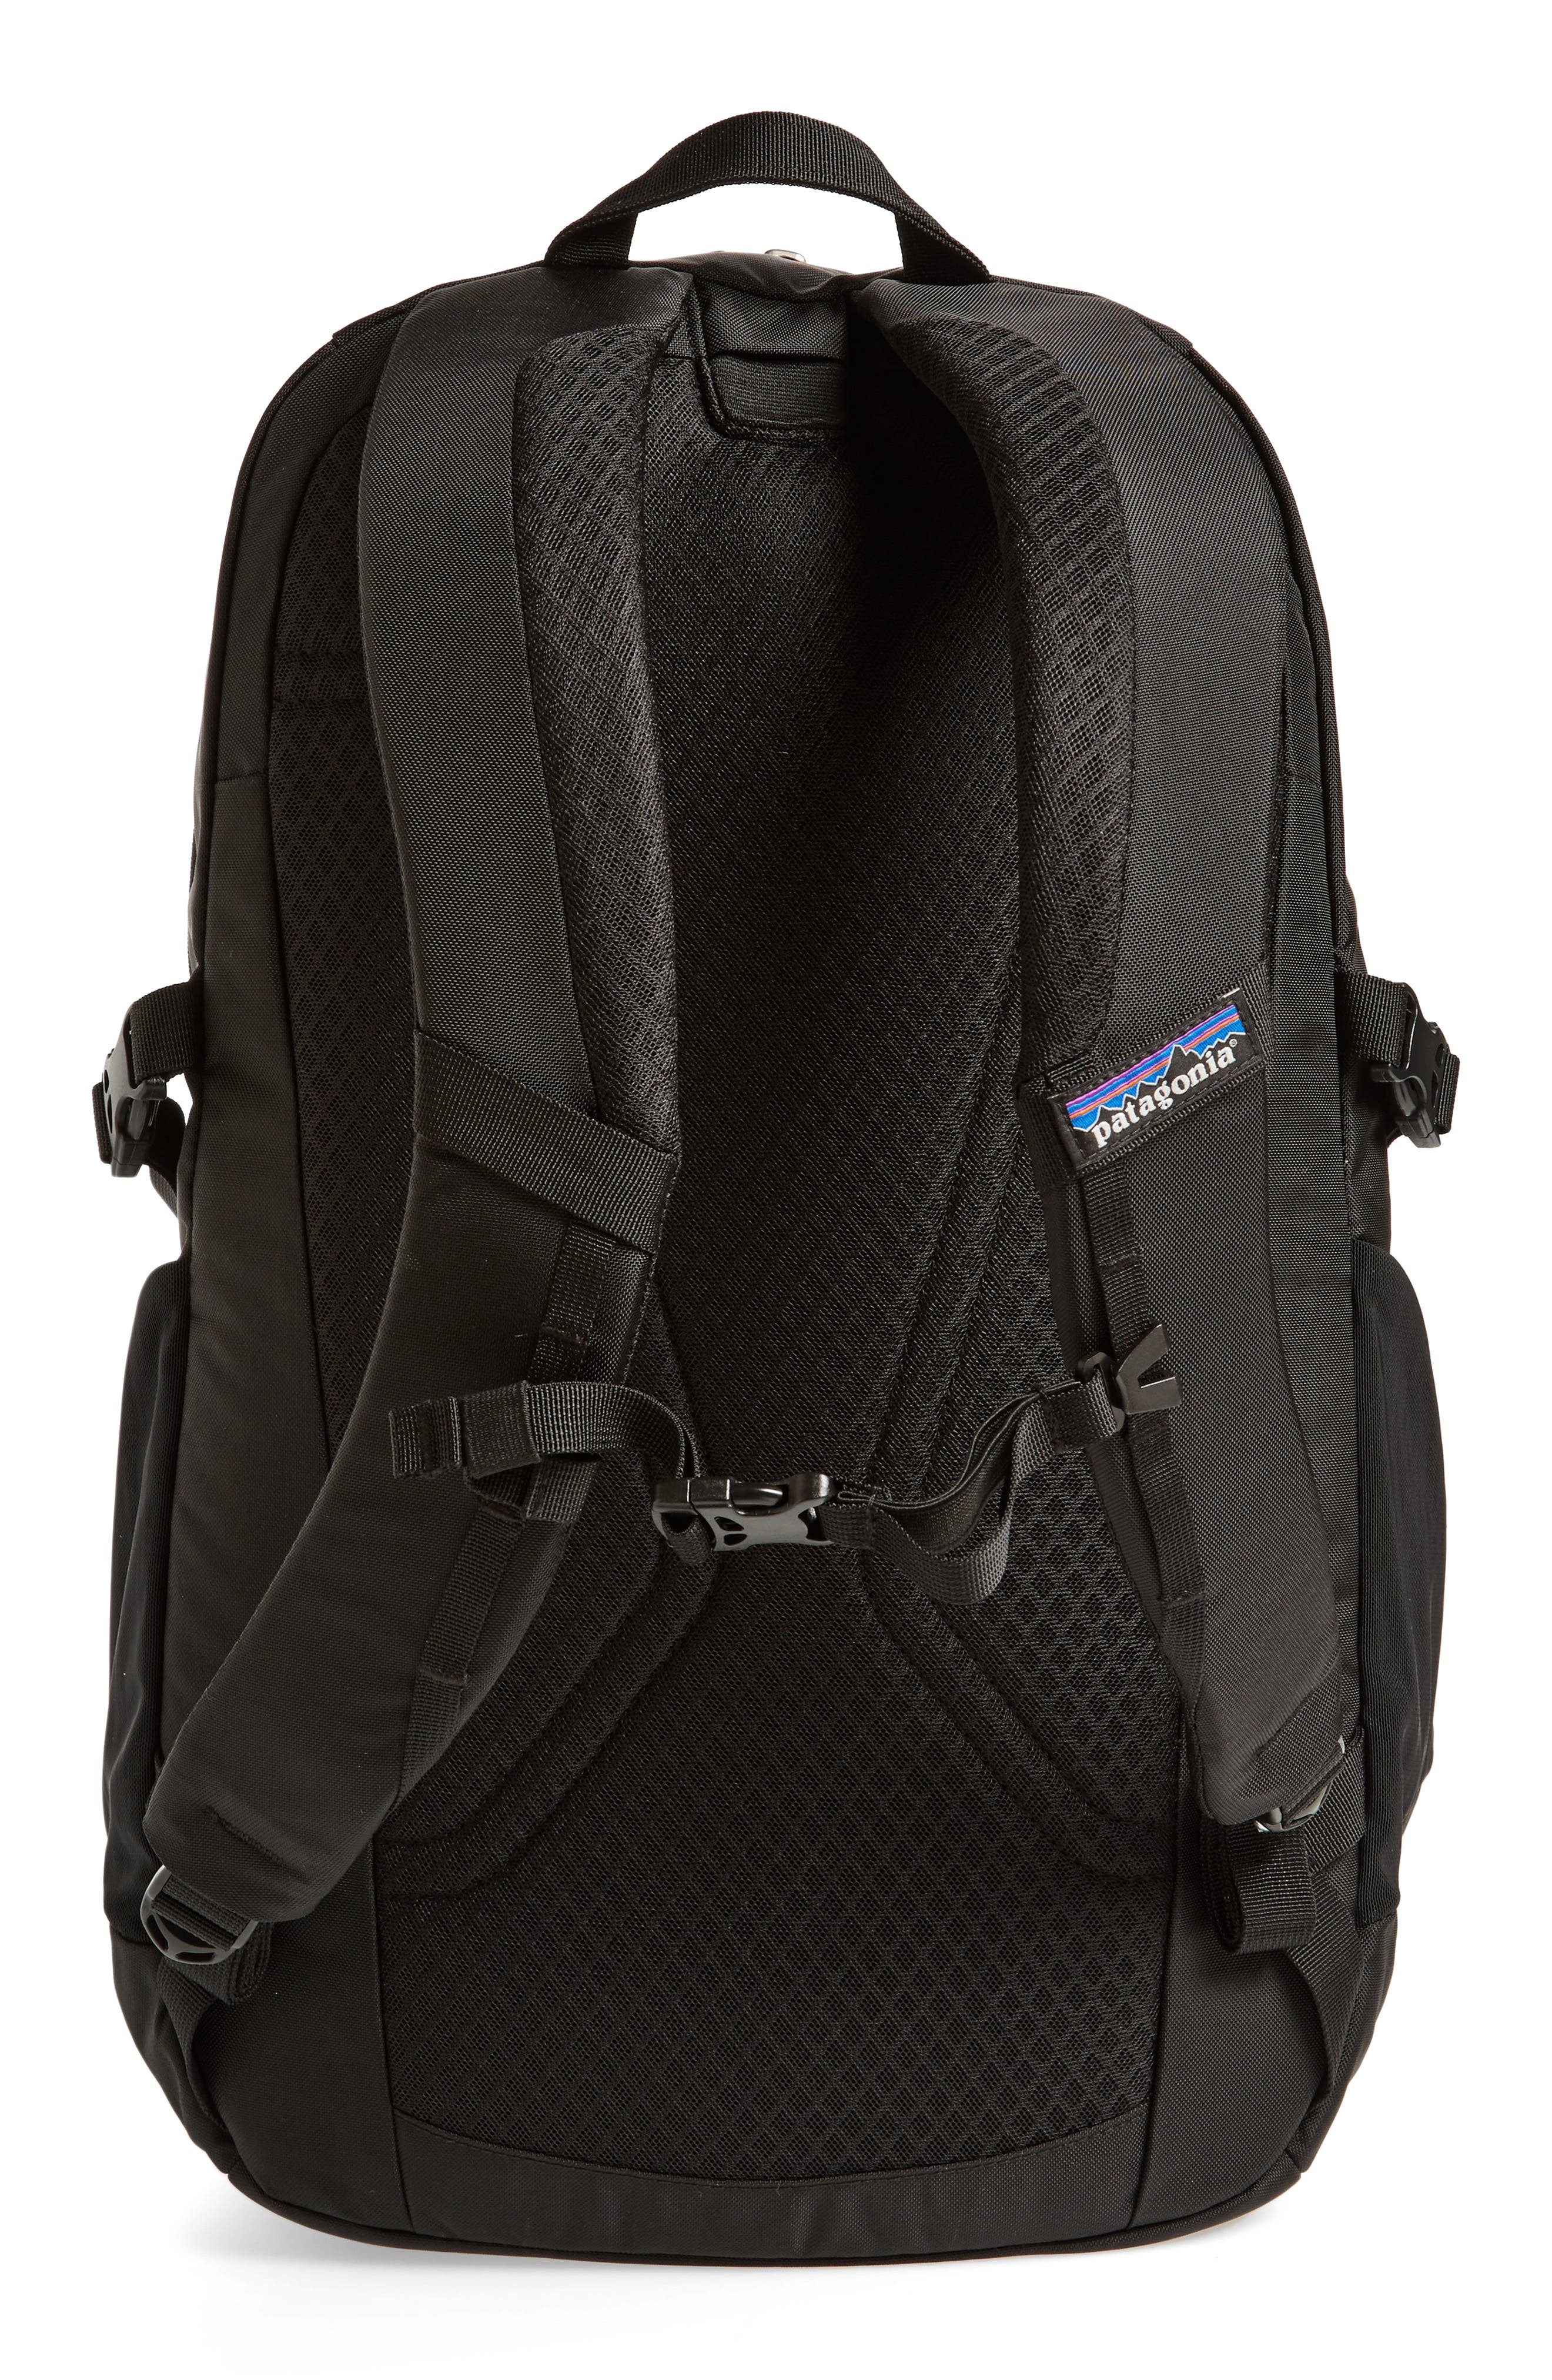 PATAGONIA, Refugio 28-Liter Backpack, Alternate thumbnail 4, color, 001